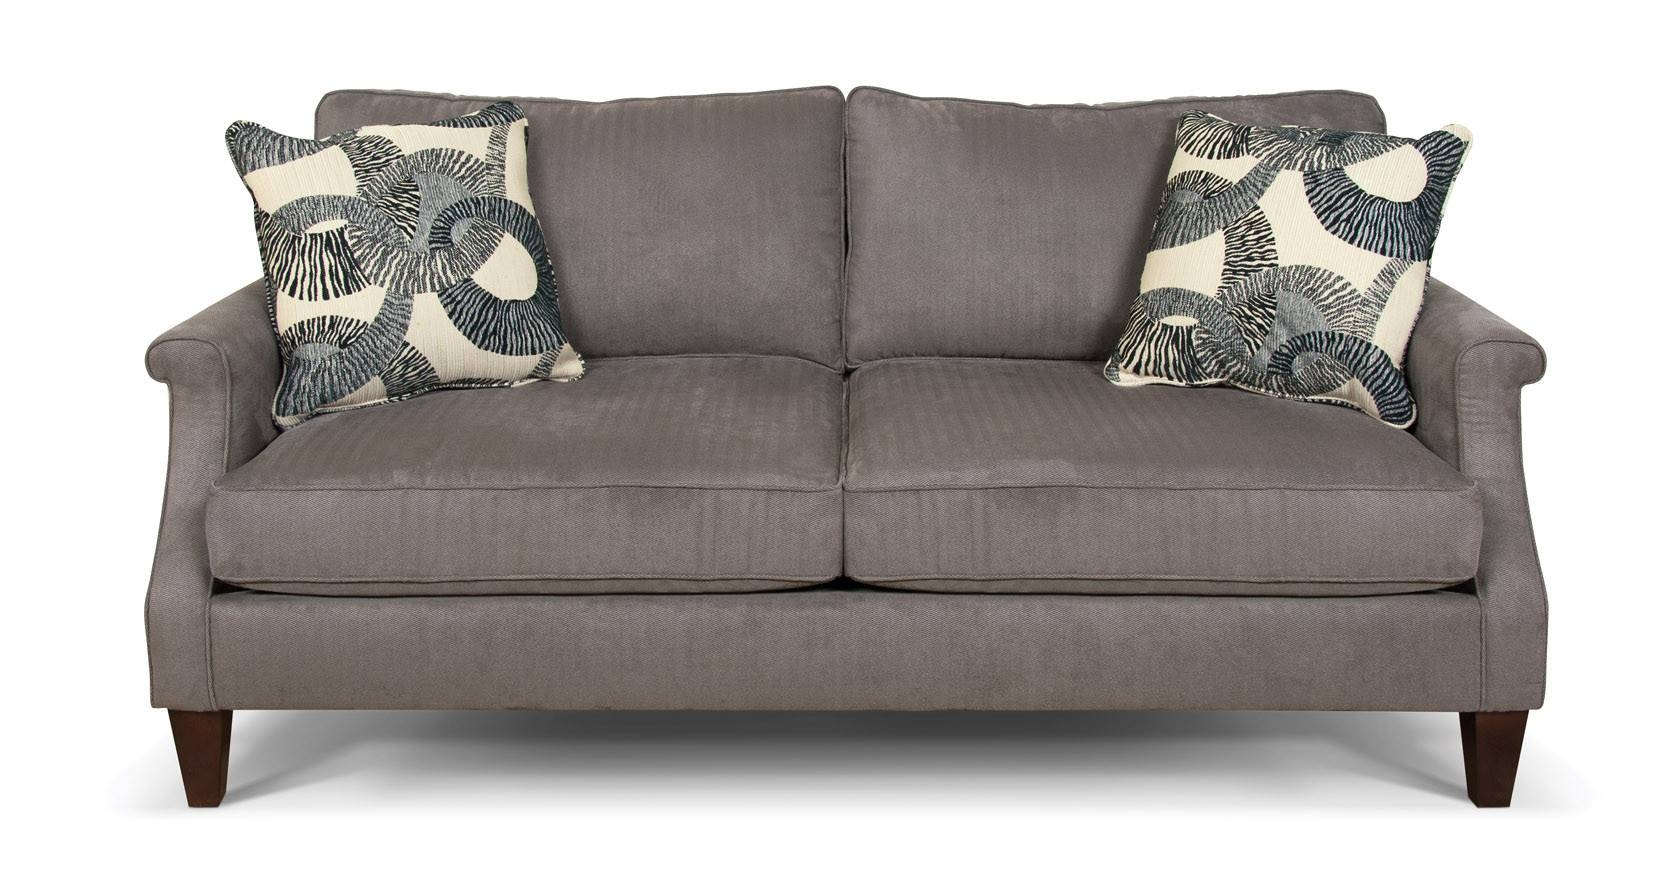 Download Innovation High End Leather Sofa throughout High End Sofa (Image 5 of 30)